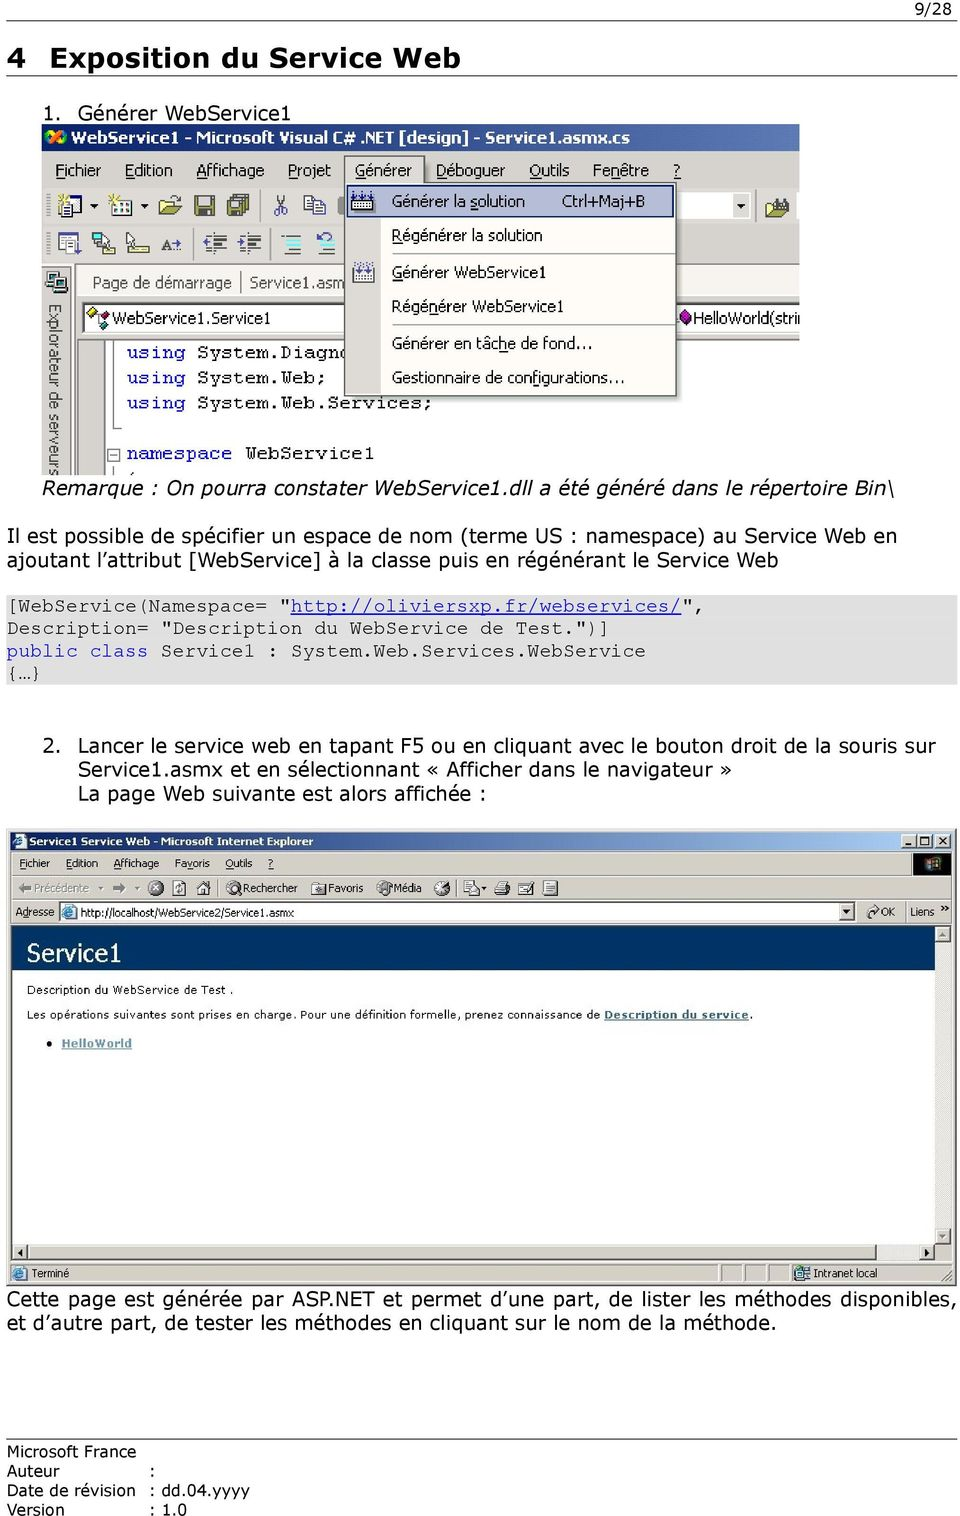 "Service Web [WebService(Namespace= ""http://oliviersxp.fr/webservices/"", Description= ""Description du WebService de Test."")] public class Service1 : System.Web.Services.WebService { } 2."